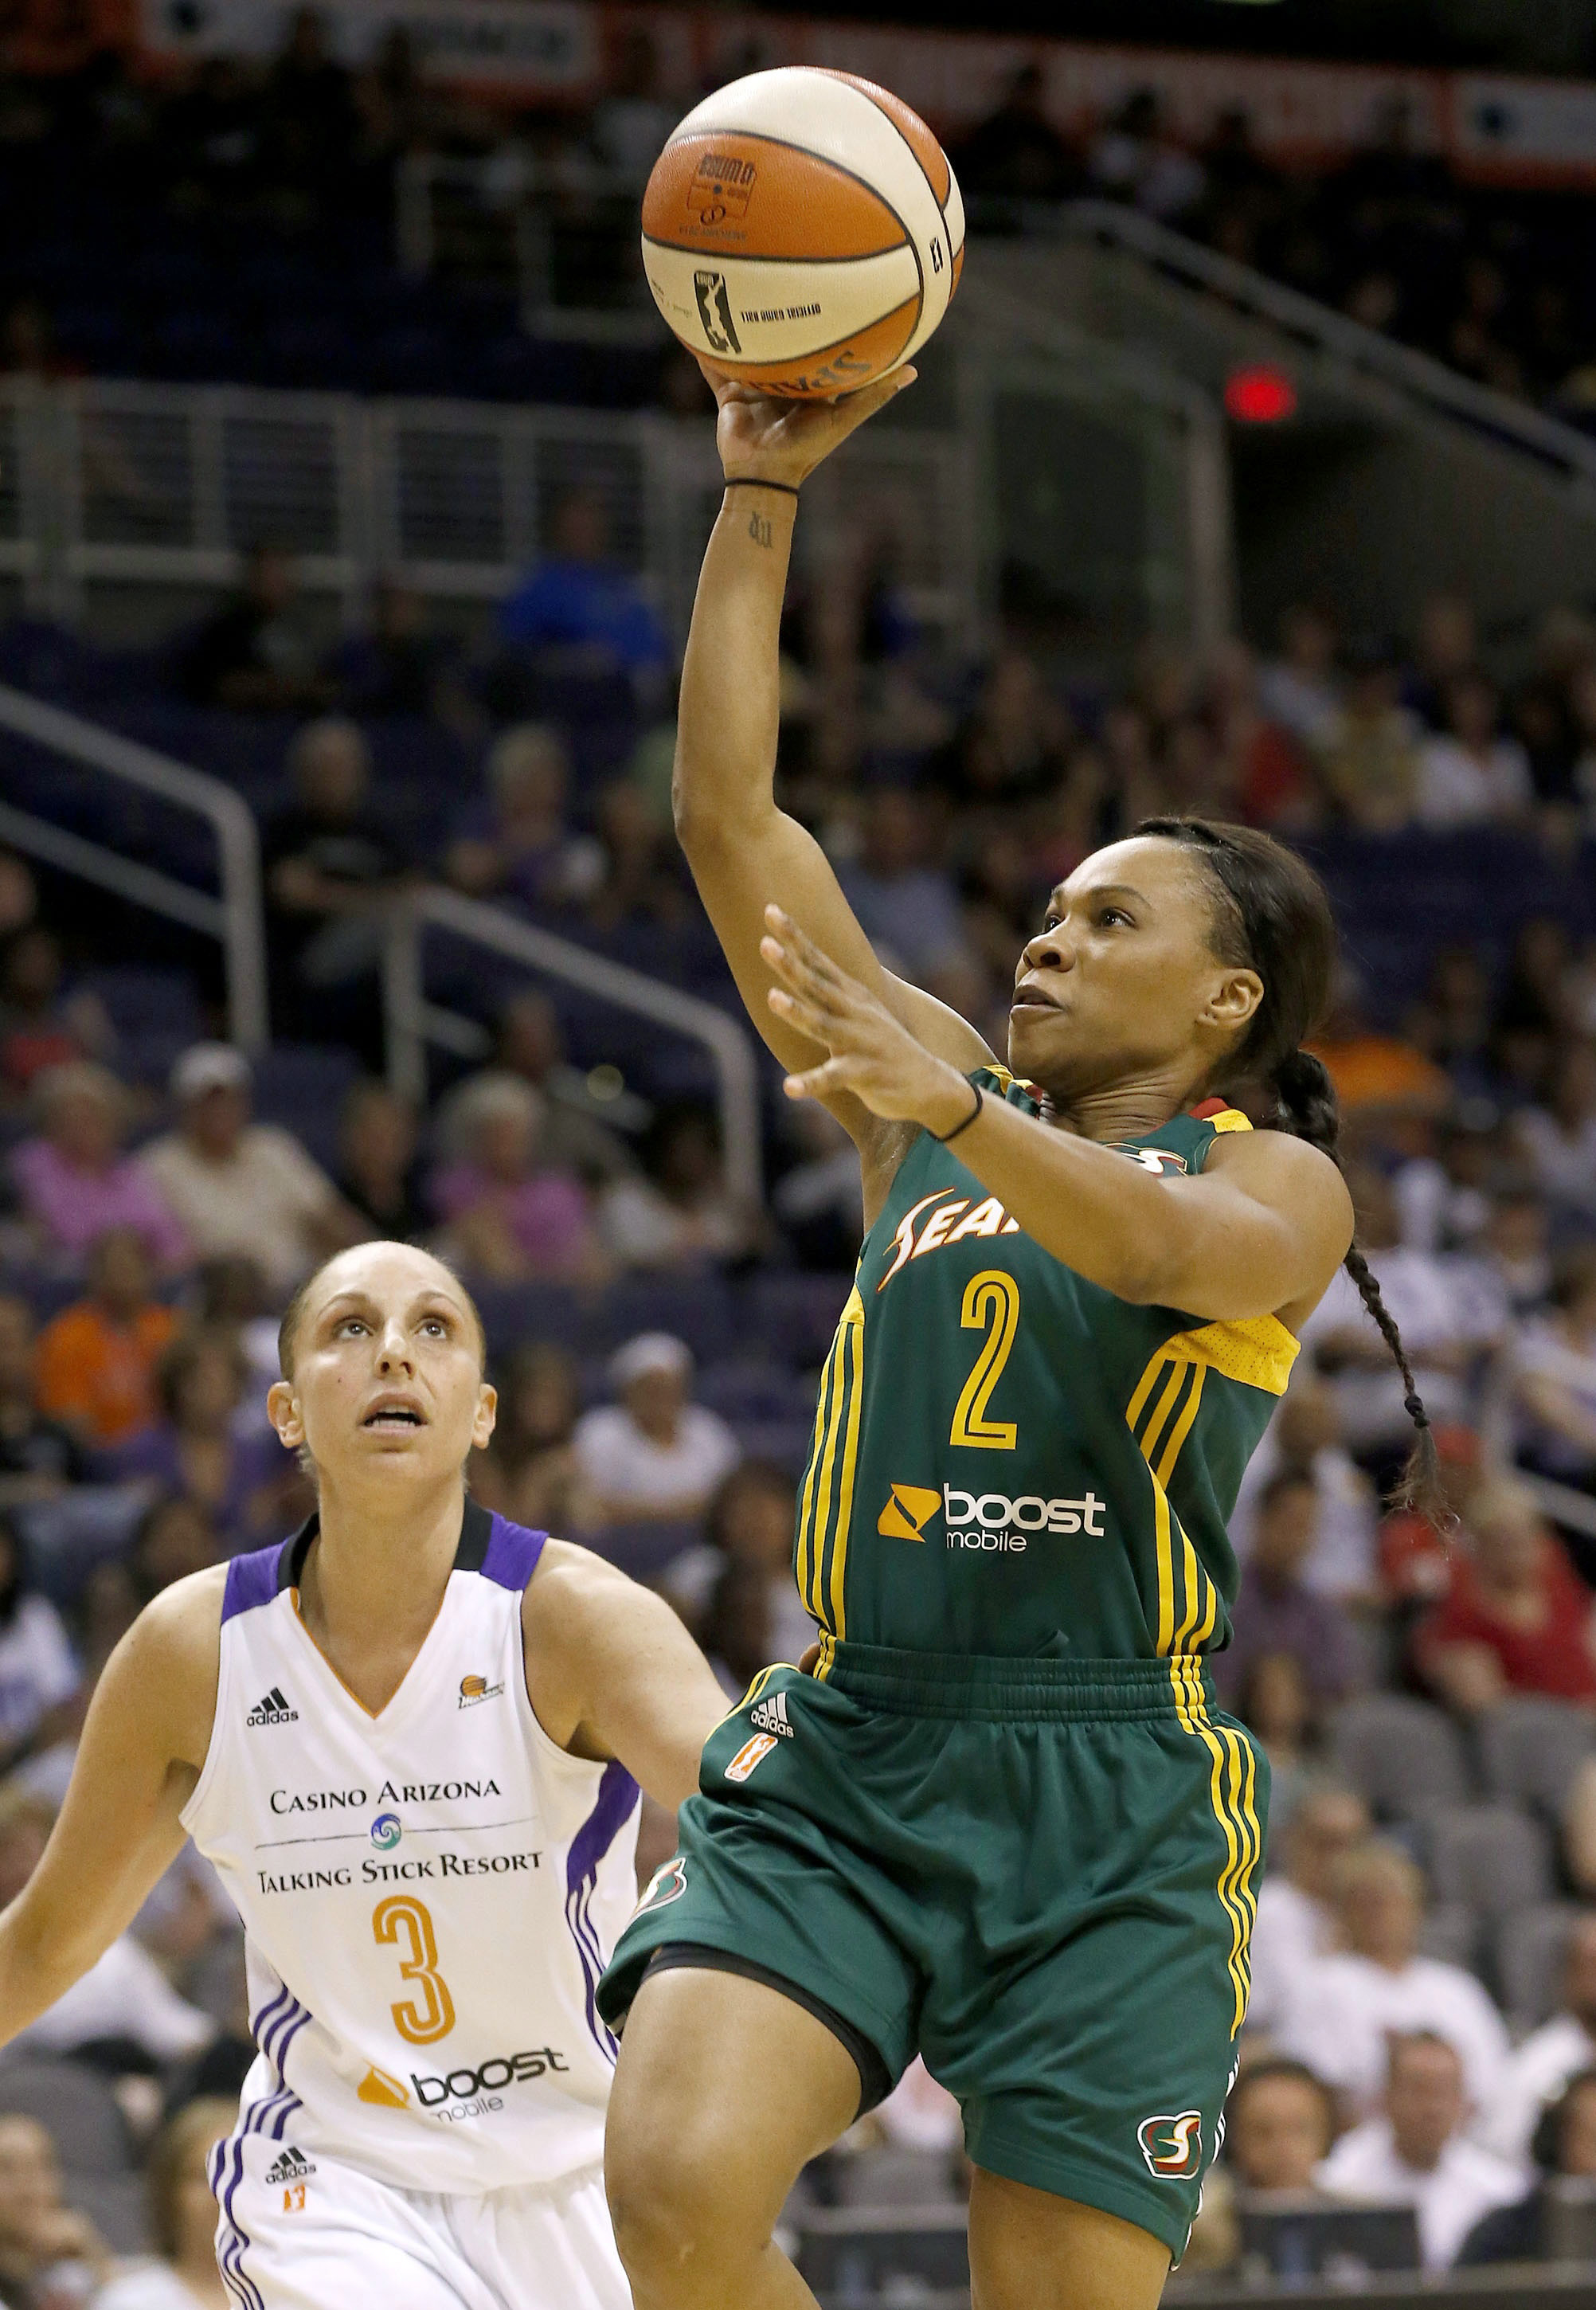 Seattle Storm's Temeka Johnson (2) shoots as she gets past Phoenix Mercury's Diana Taurasi (3) during the first half of a WNBA basketball game on Tuesday, June 3, 2014, in Phoenix